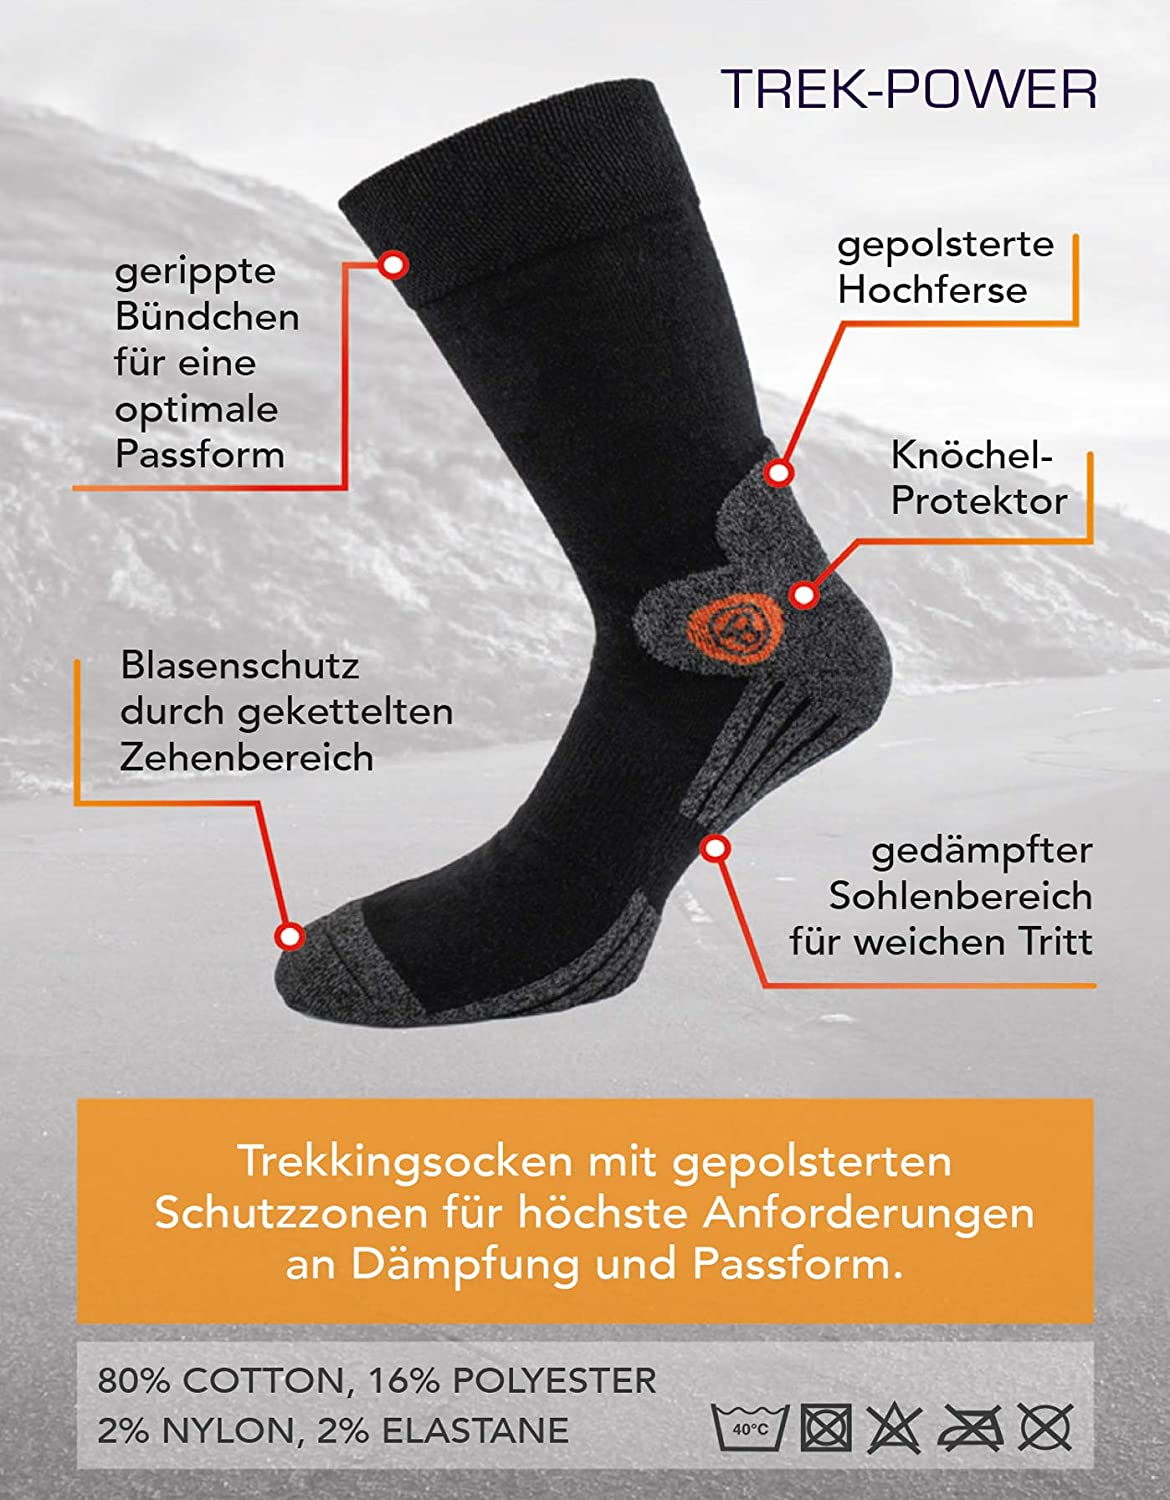 4 Pairs of BRUBAKER Trek-Power Socks for Trekking Hiking Walking Cycling with Dynamic Fit Technology